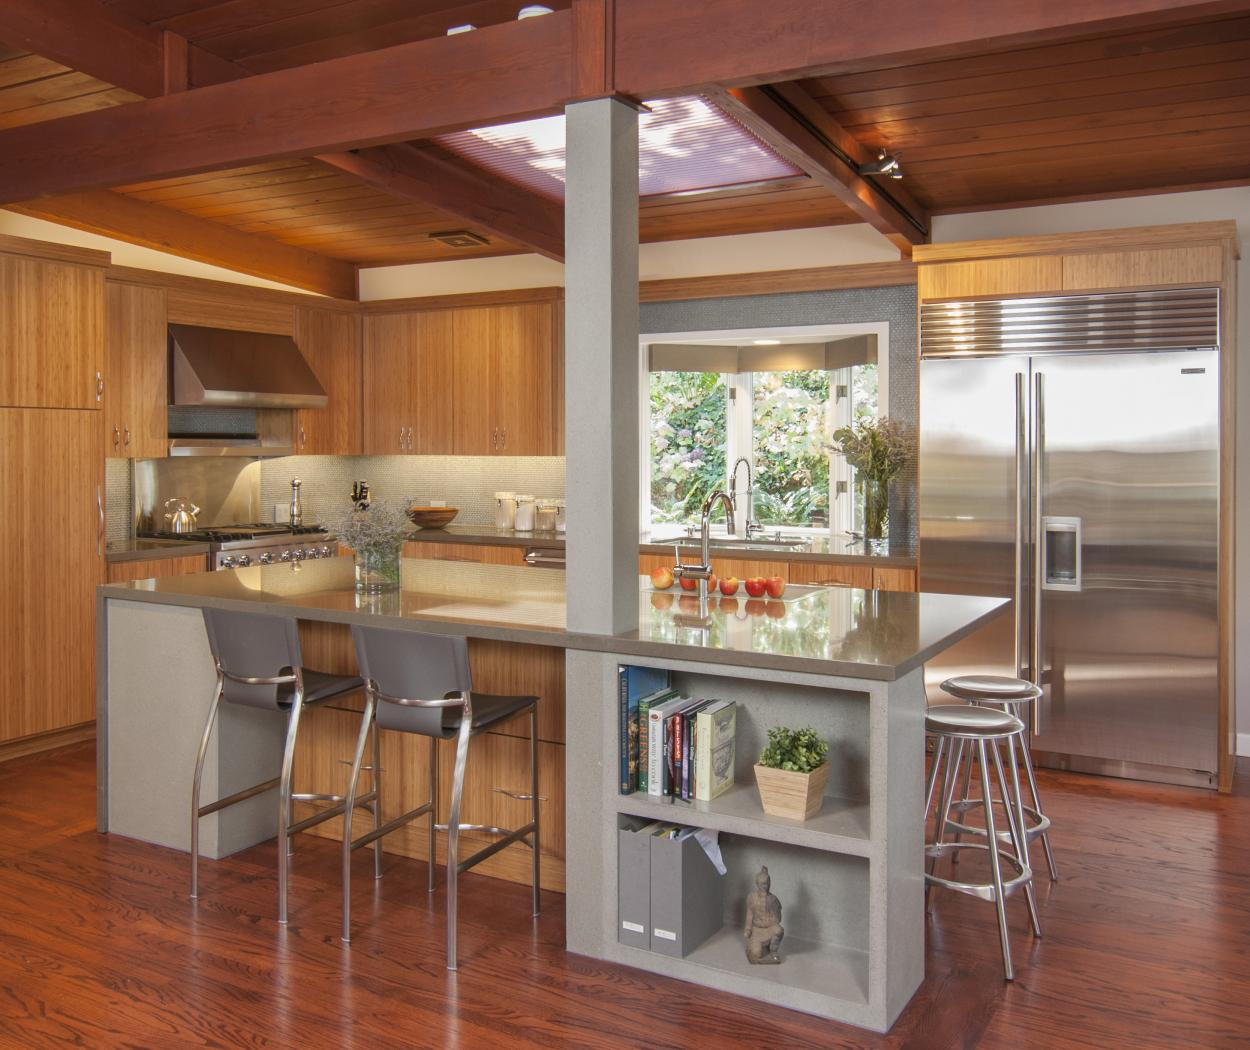 Beautiful Contemporary Kitchen with Stainless Steel Appliances